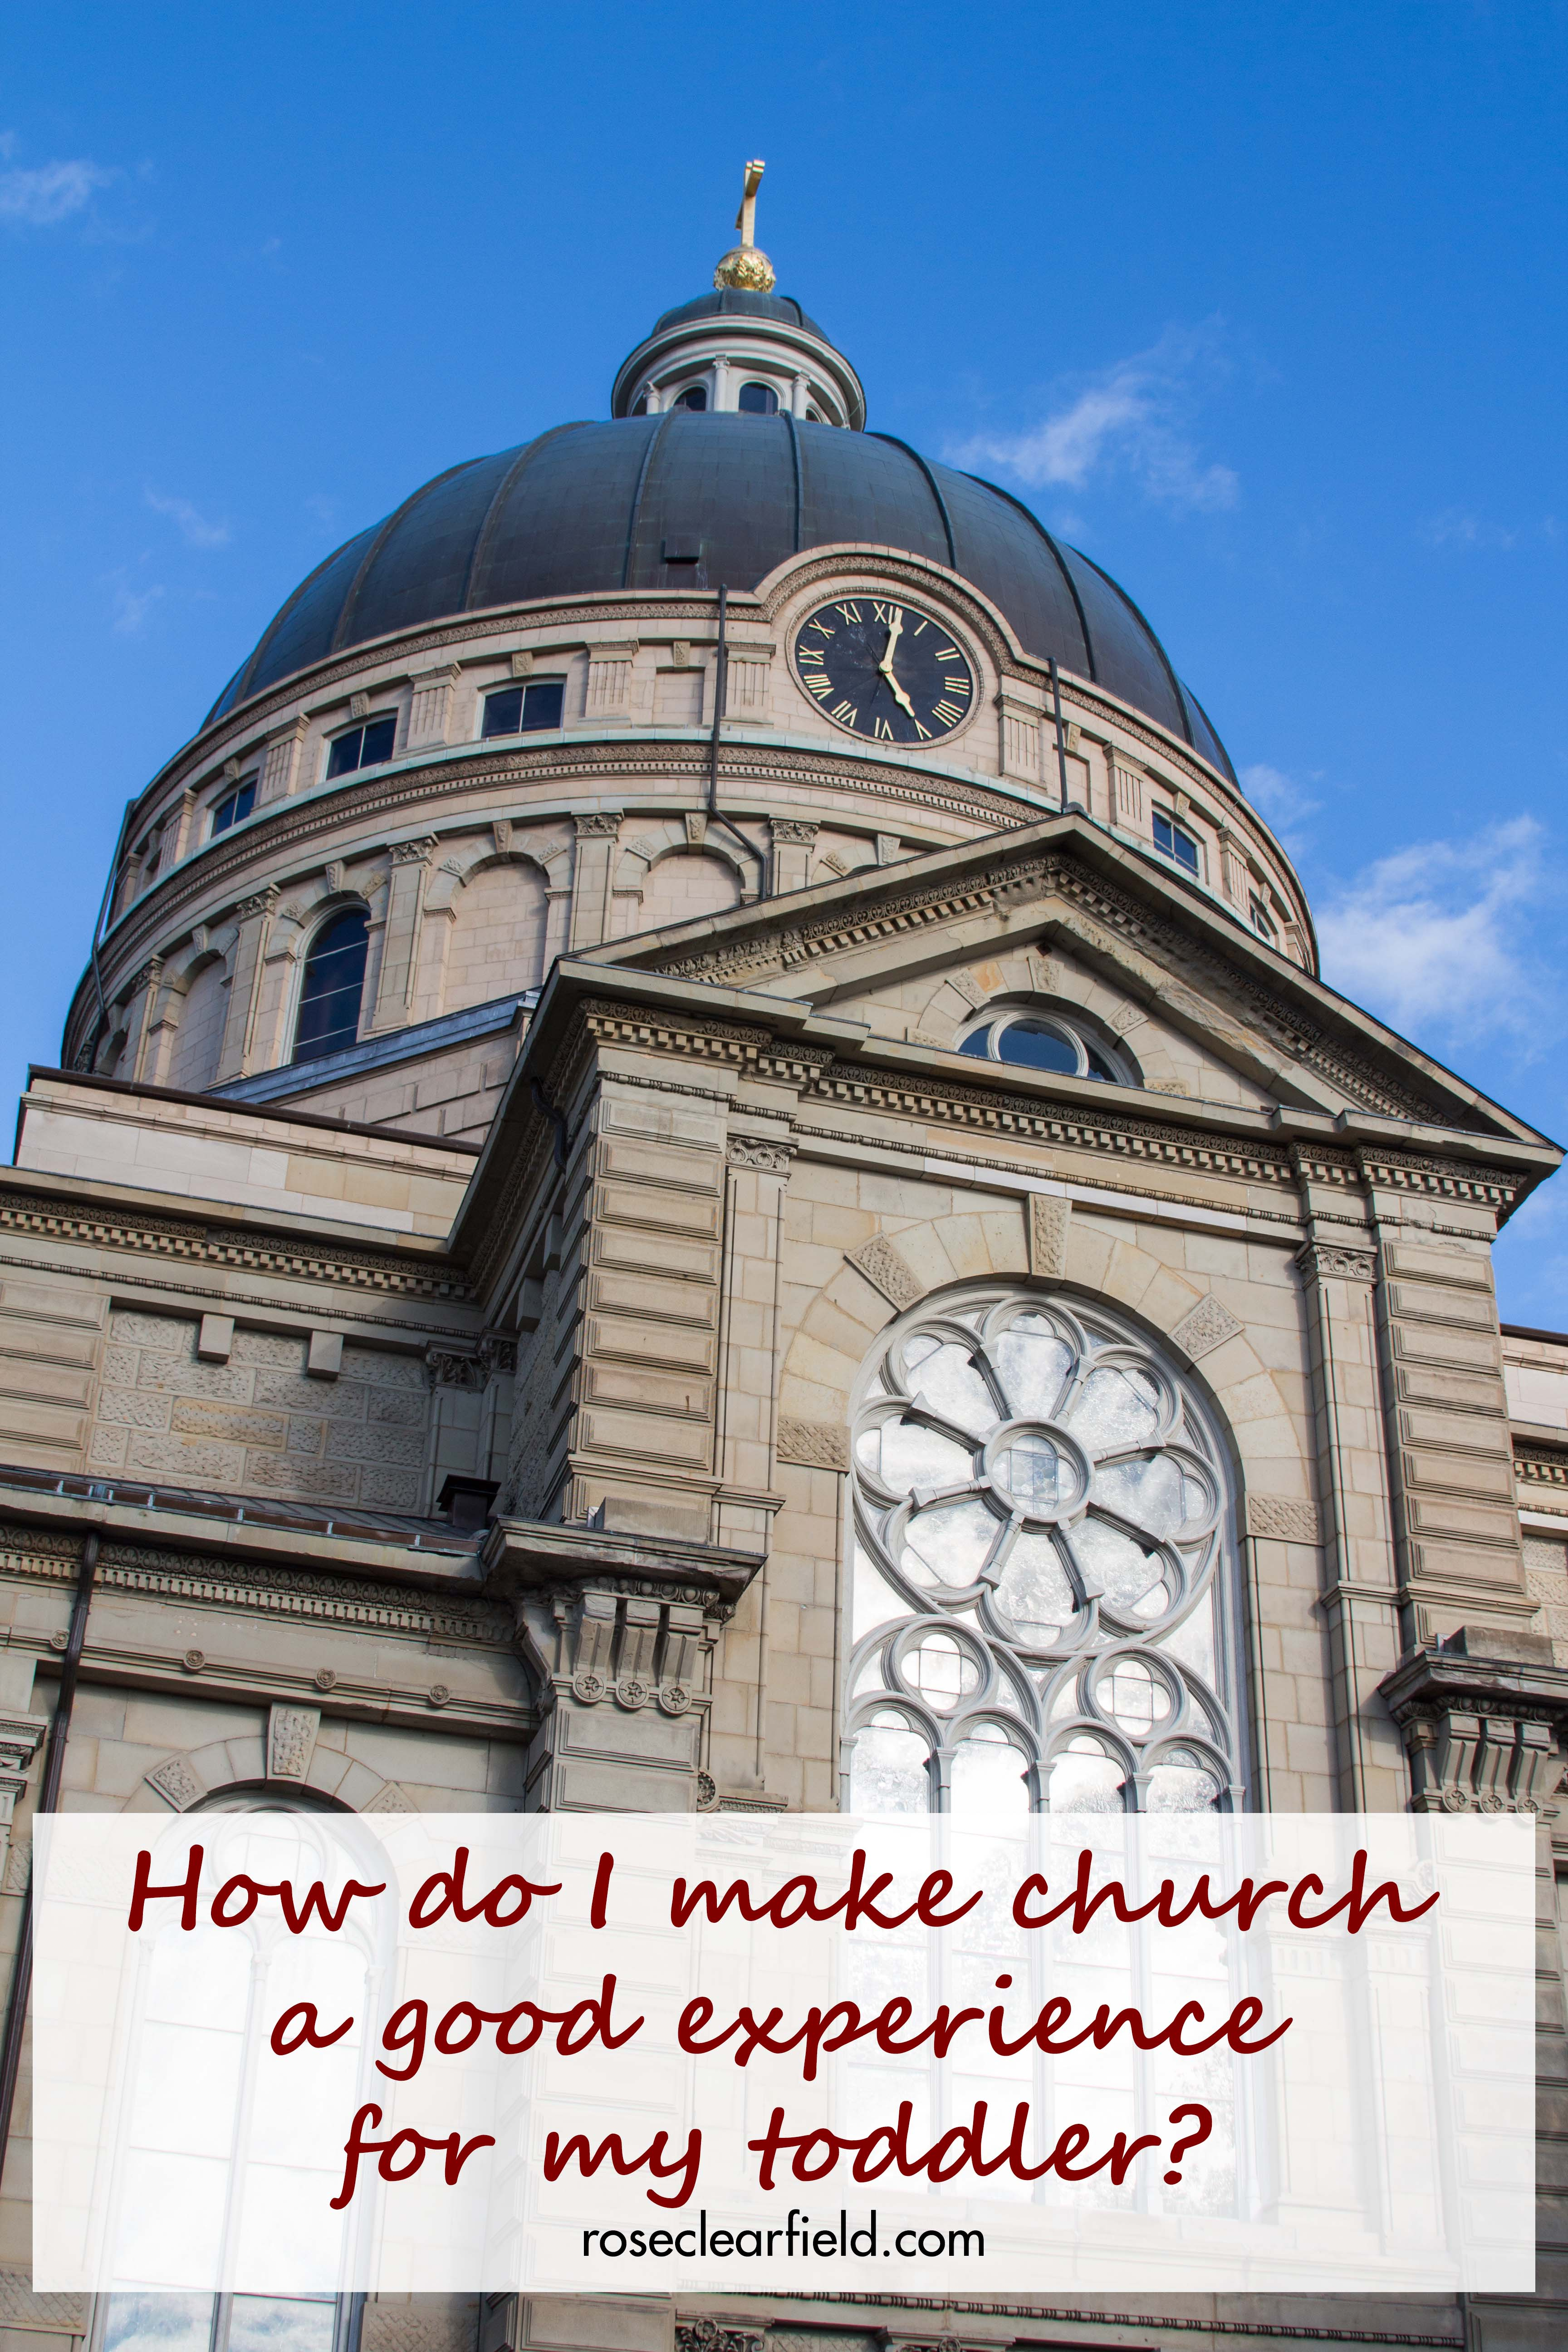 How to do I make church a good experience for my toddler? Tips to make church go more smoothly for everyone. #church #toddlersinchurch #toddlerlife   https://www.roseclearfield.com